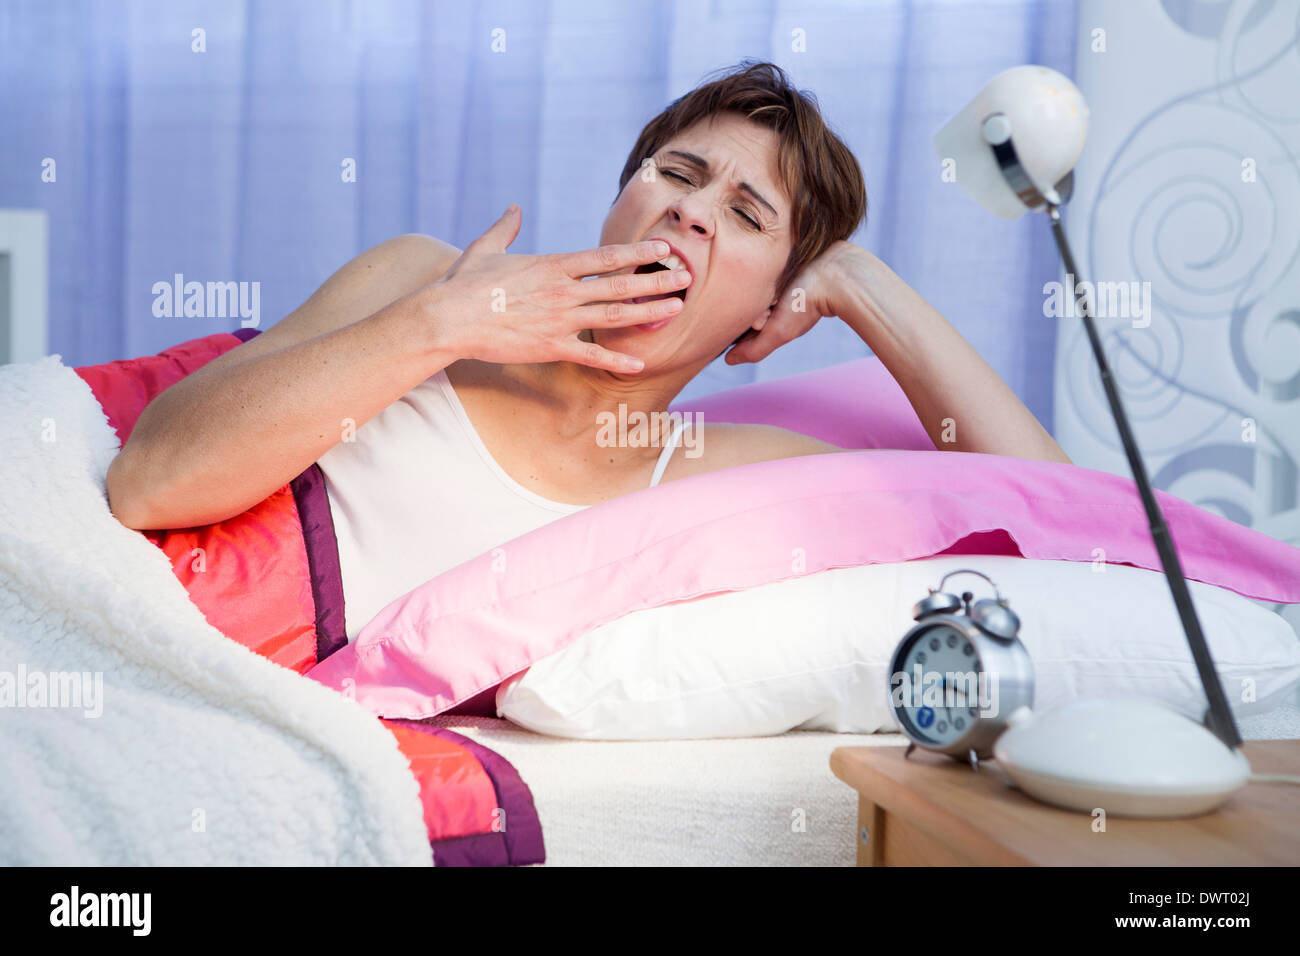 Woman with insomnia - Stock Image